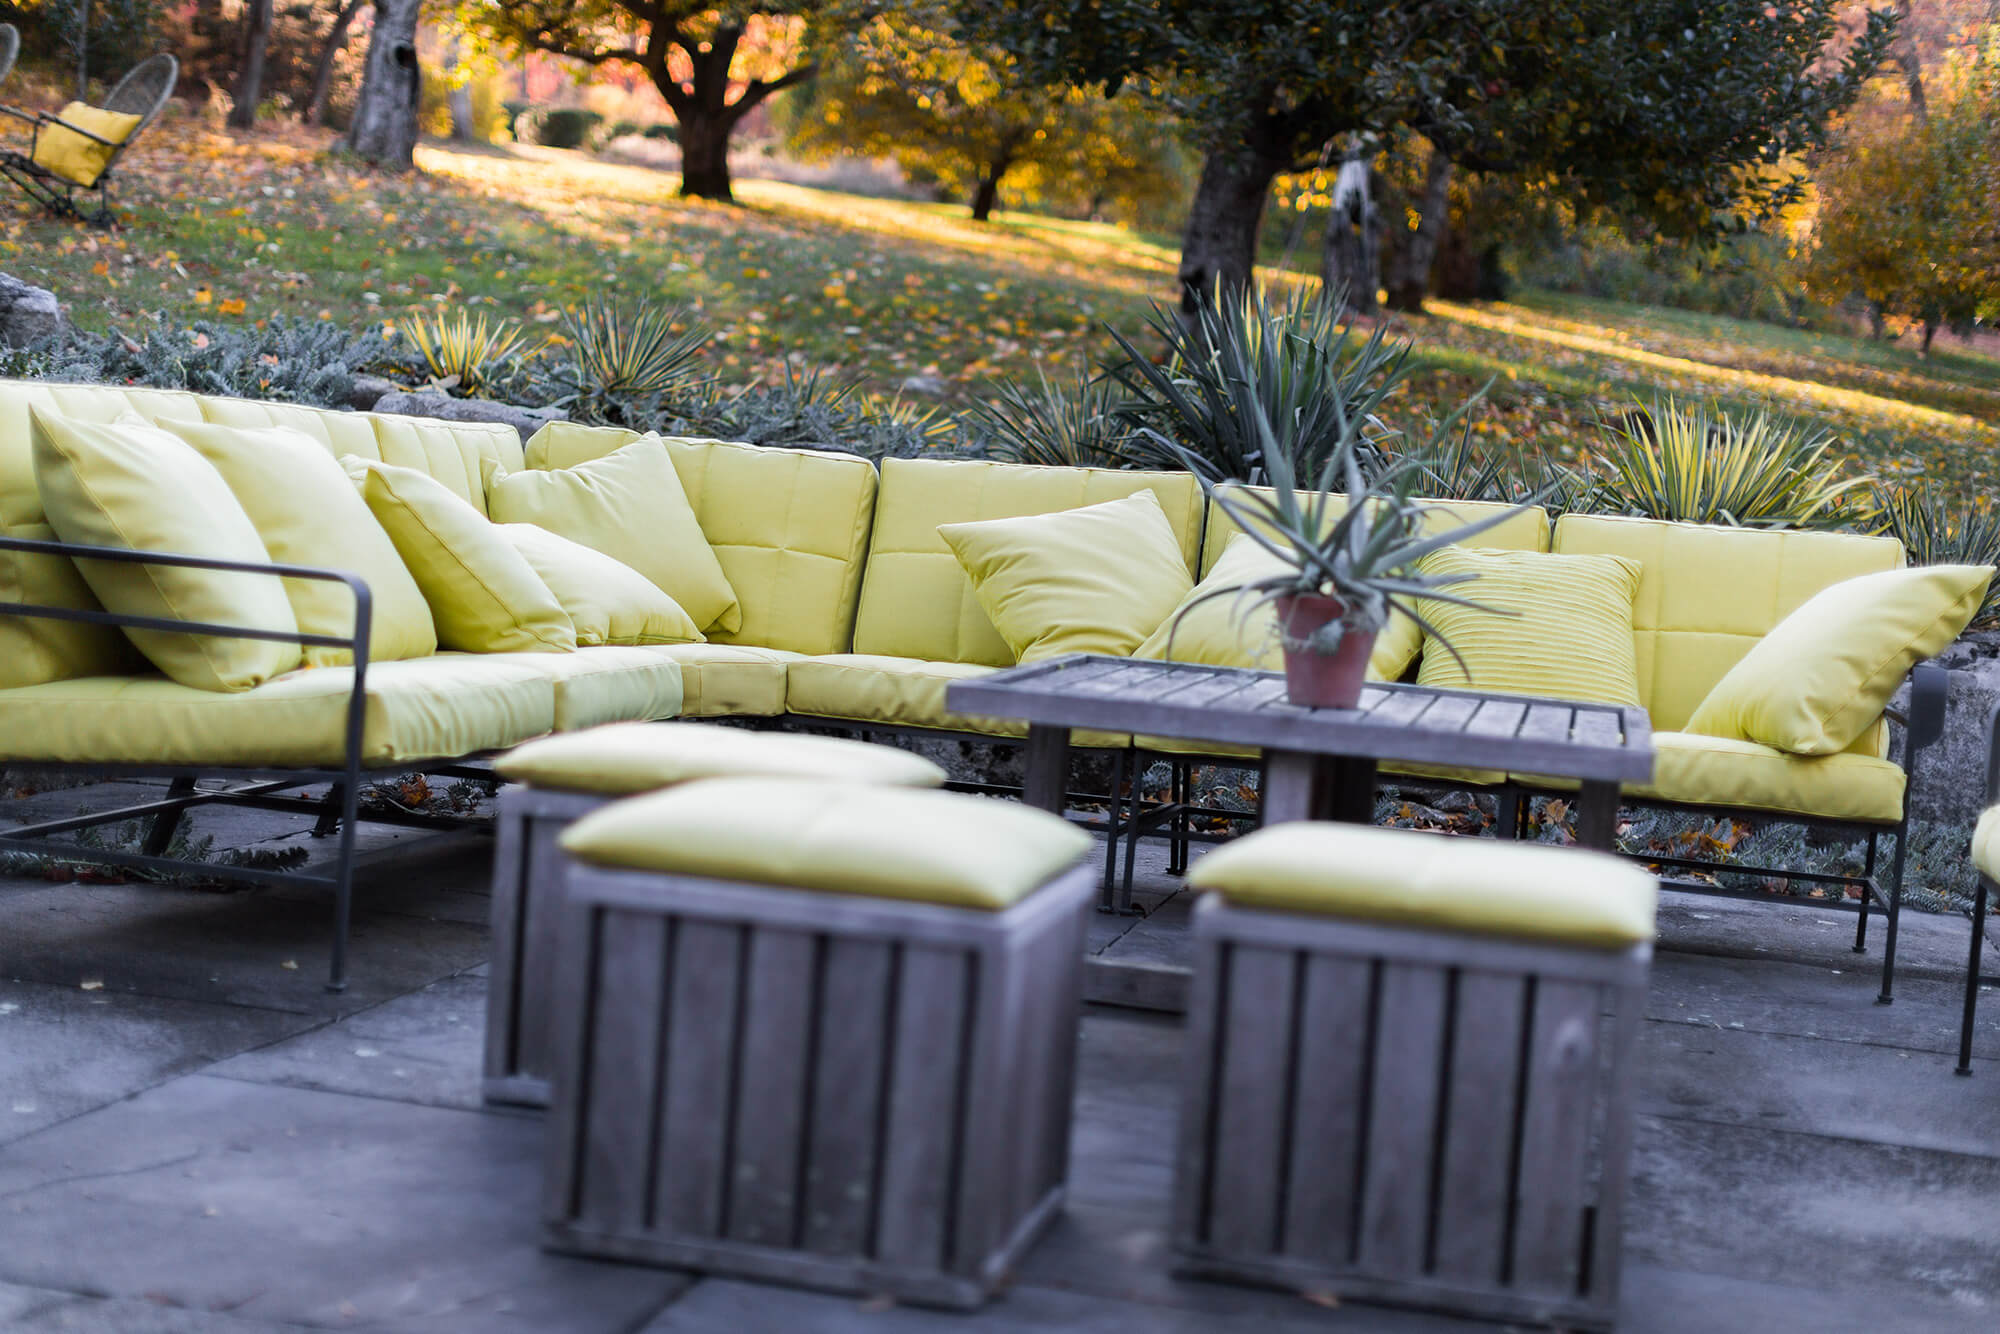 best fabrics for chairs diy chair covers folding the home indoor outdoor sunbrella sofa on patio featuring cushions with green fabric